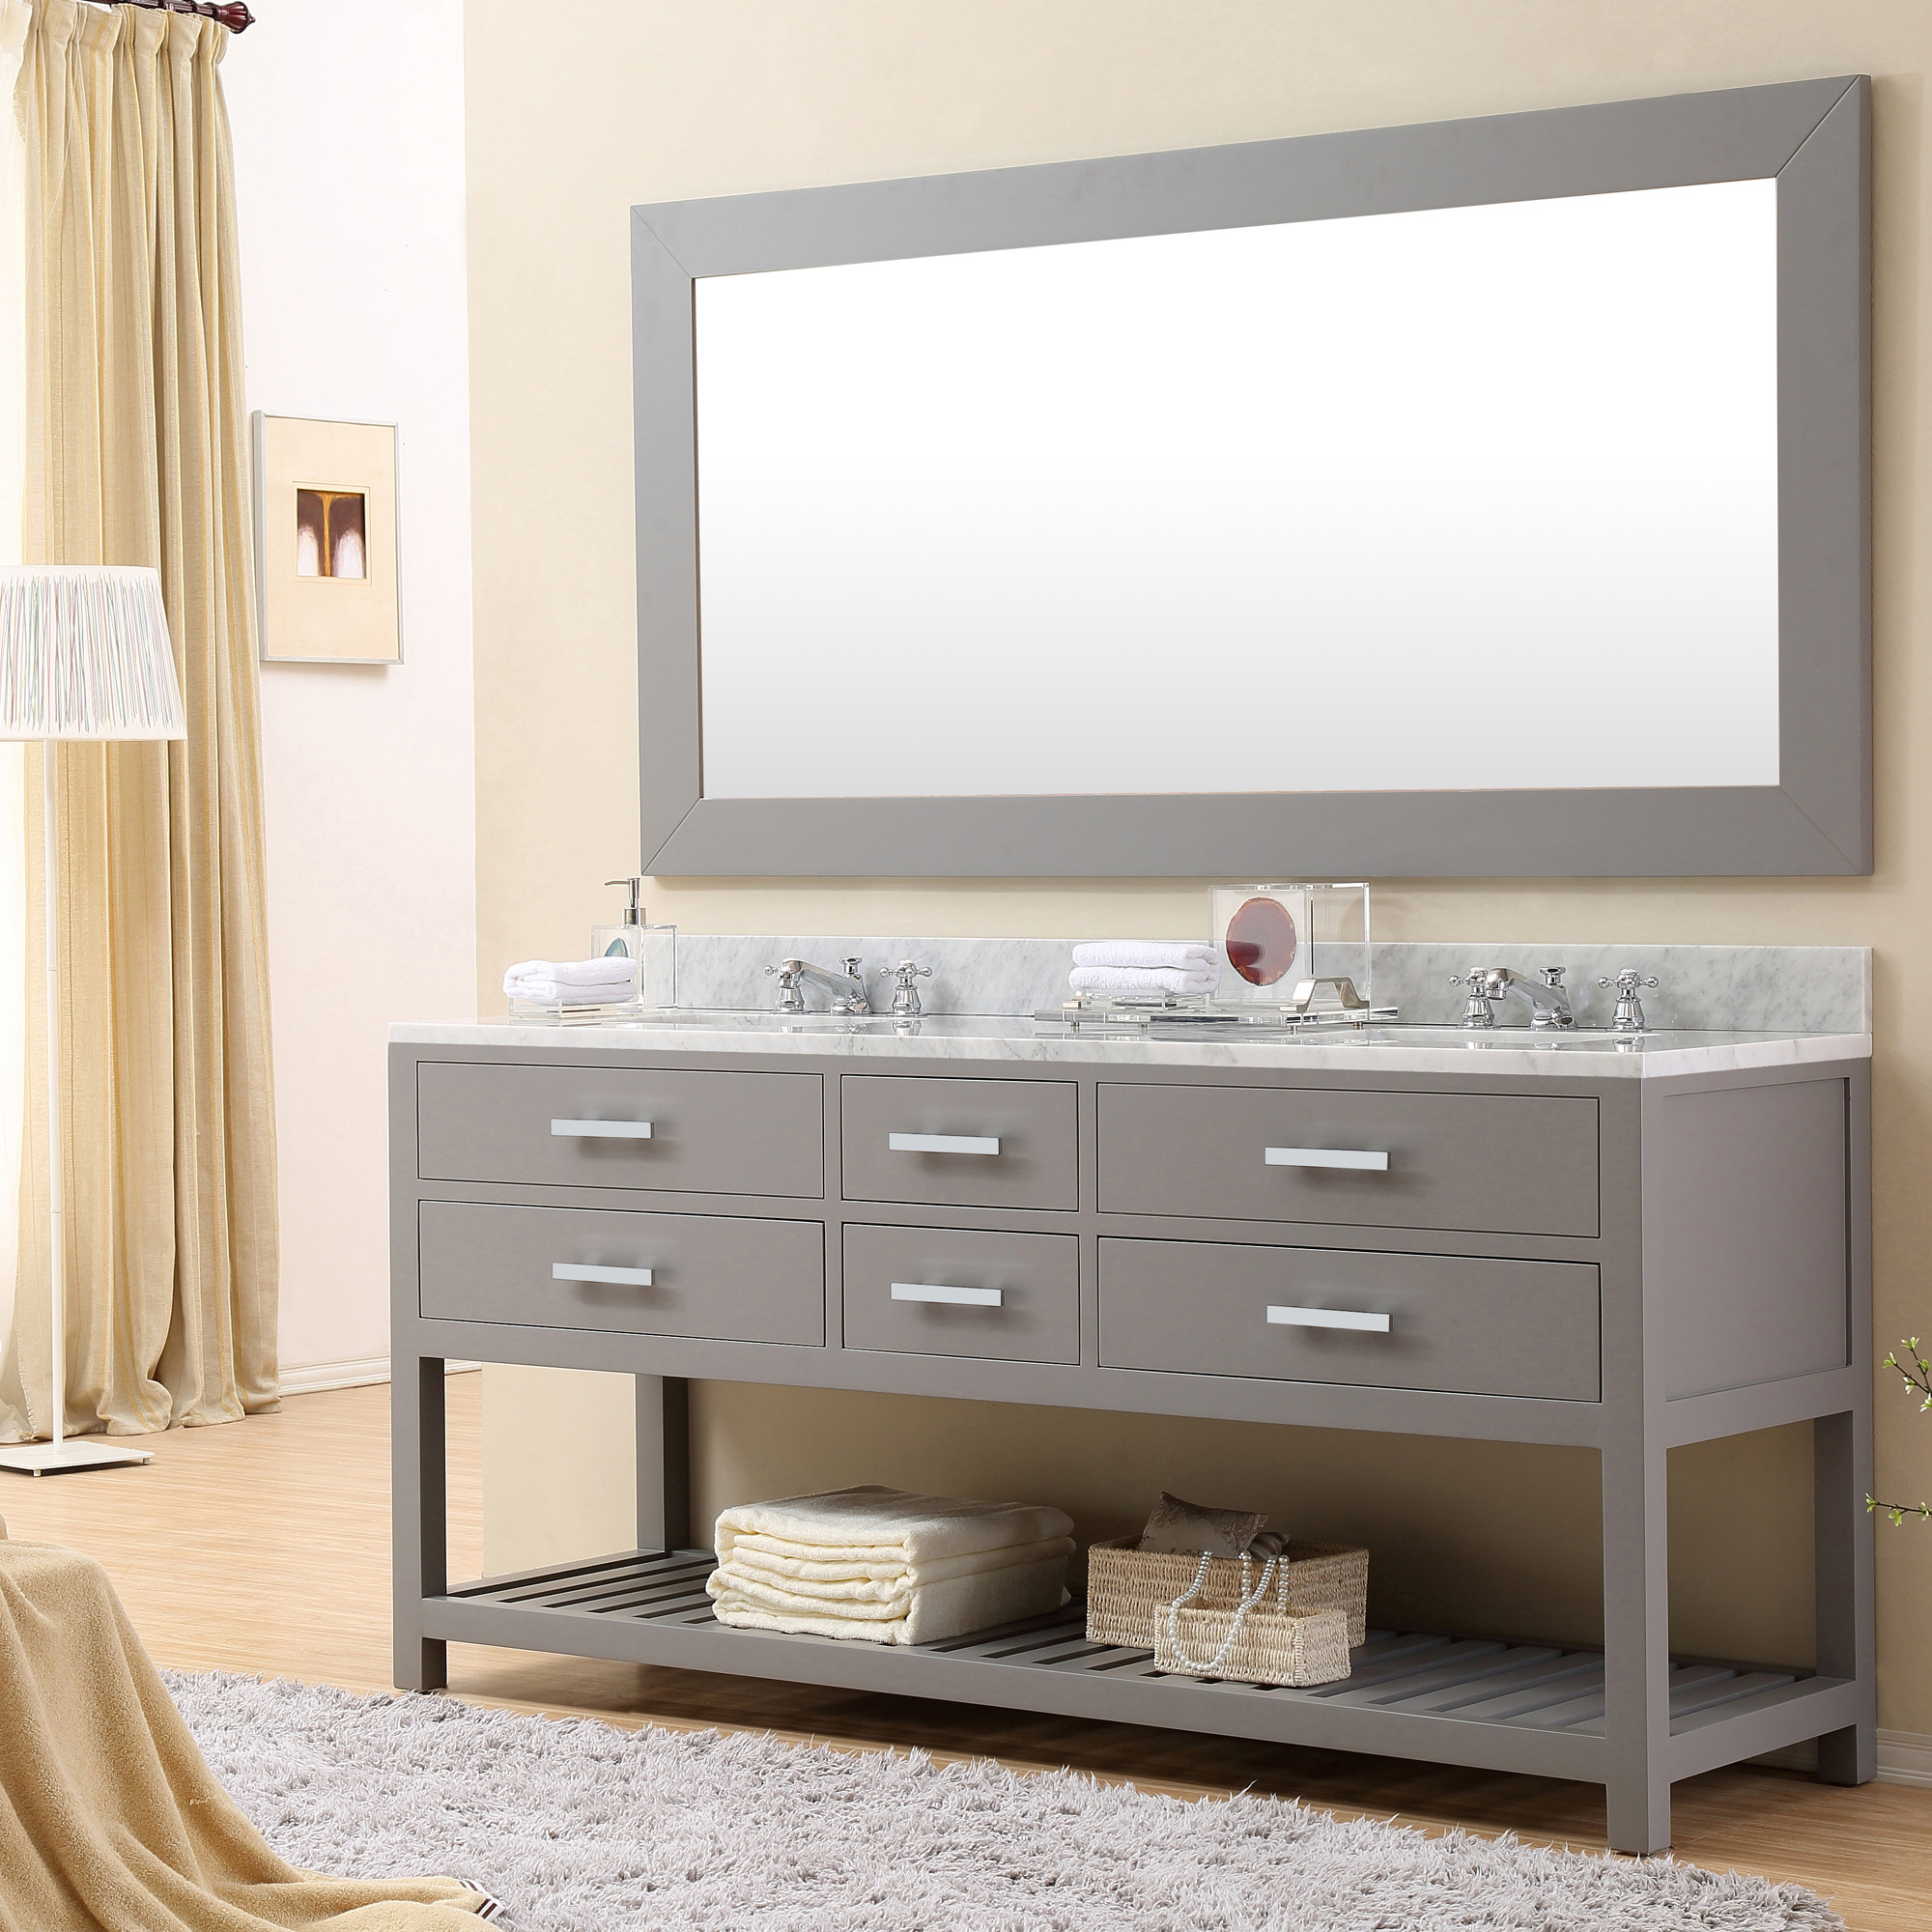 Cadale Inch Gray Finish Double Sink Bathroom Vanity One Mirror - 72 inch modern bathroom vanity